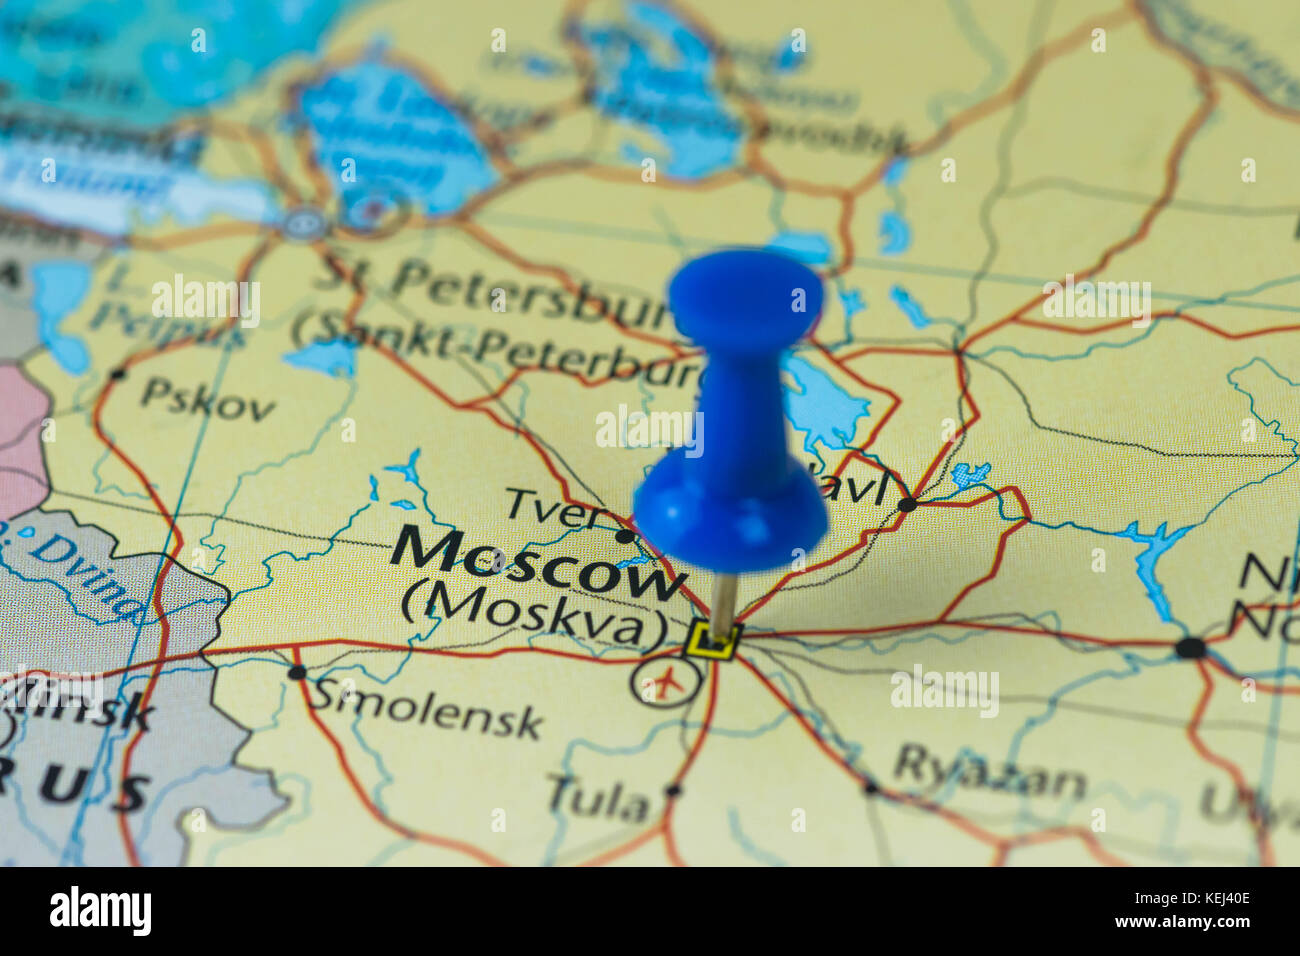 Moscow Pinned in a closeup map for football world cup 2018 in Russia ...